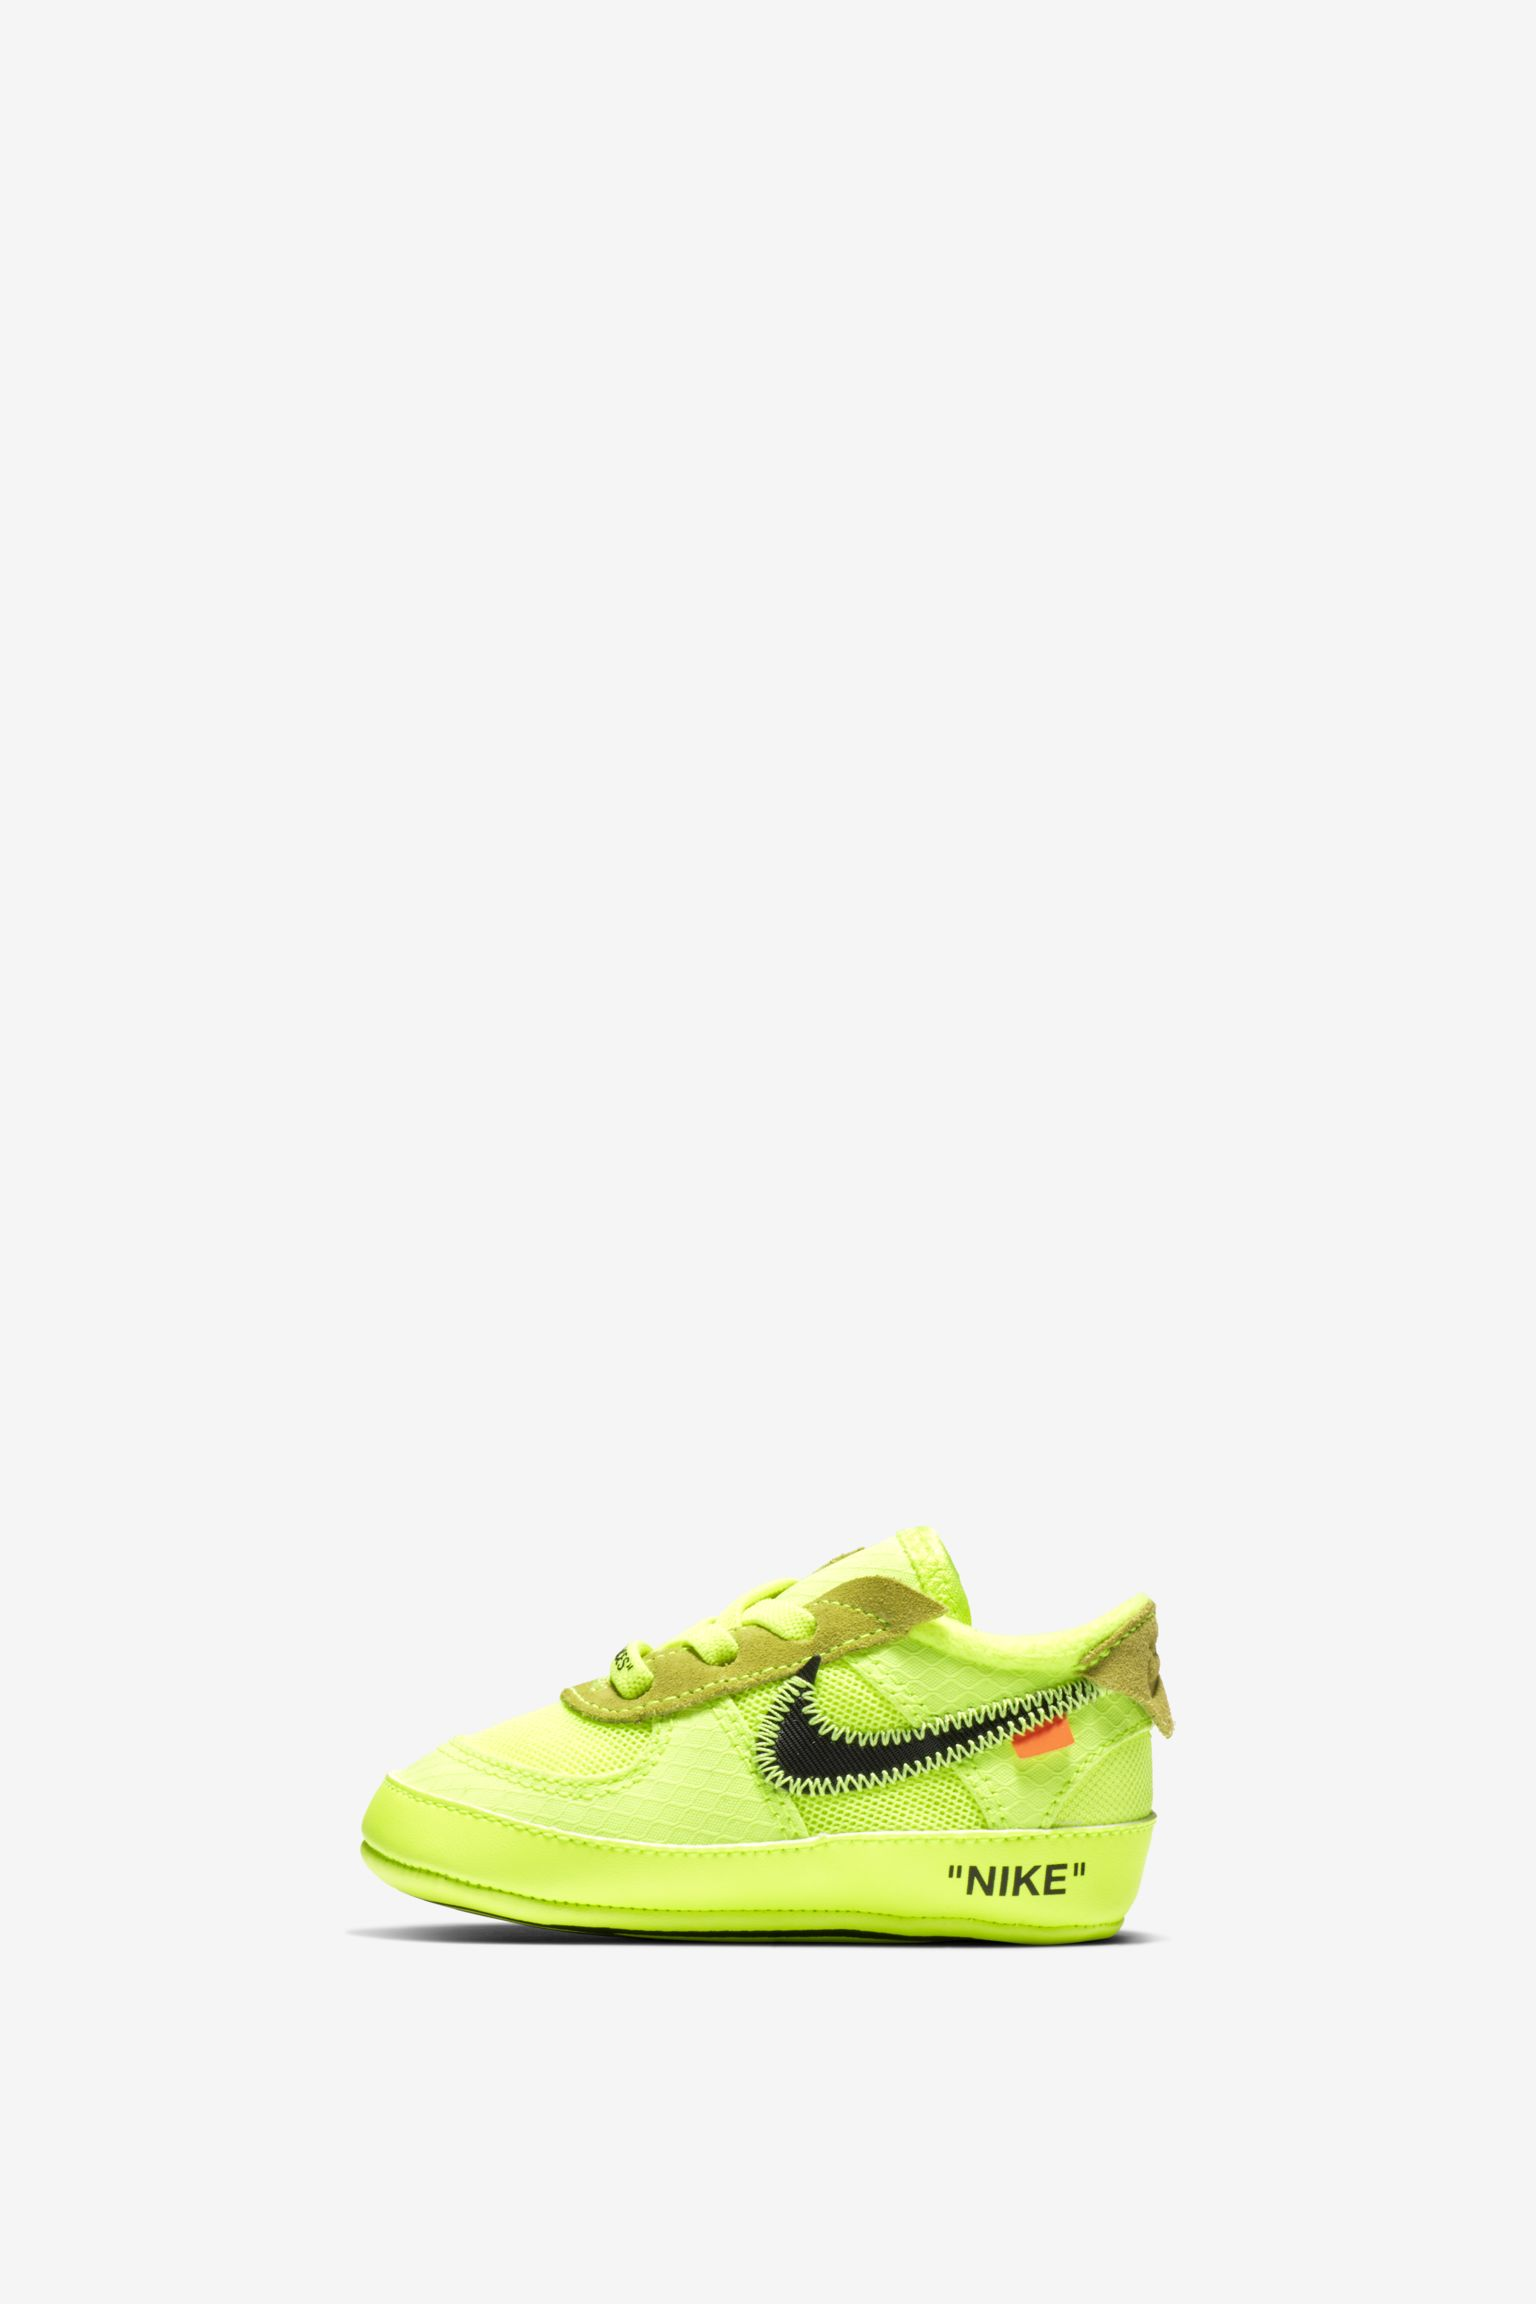 The Ten: Nike Air Force 1 Low 'Volt & Black & Hyper Jade' Release Date